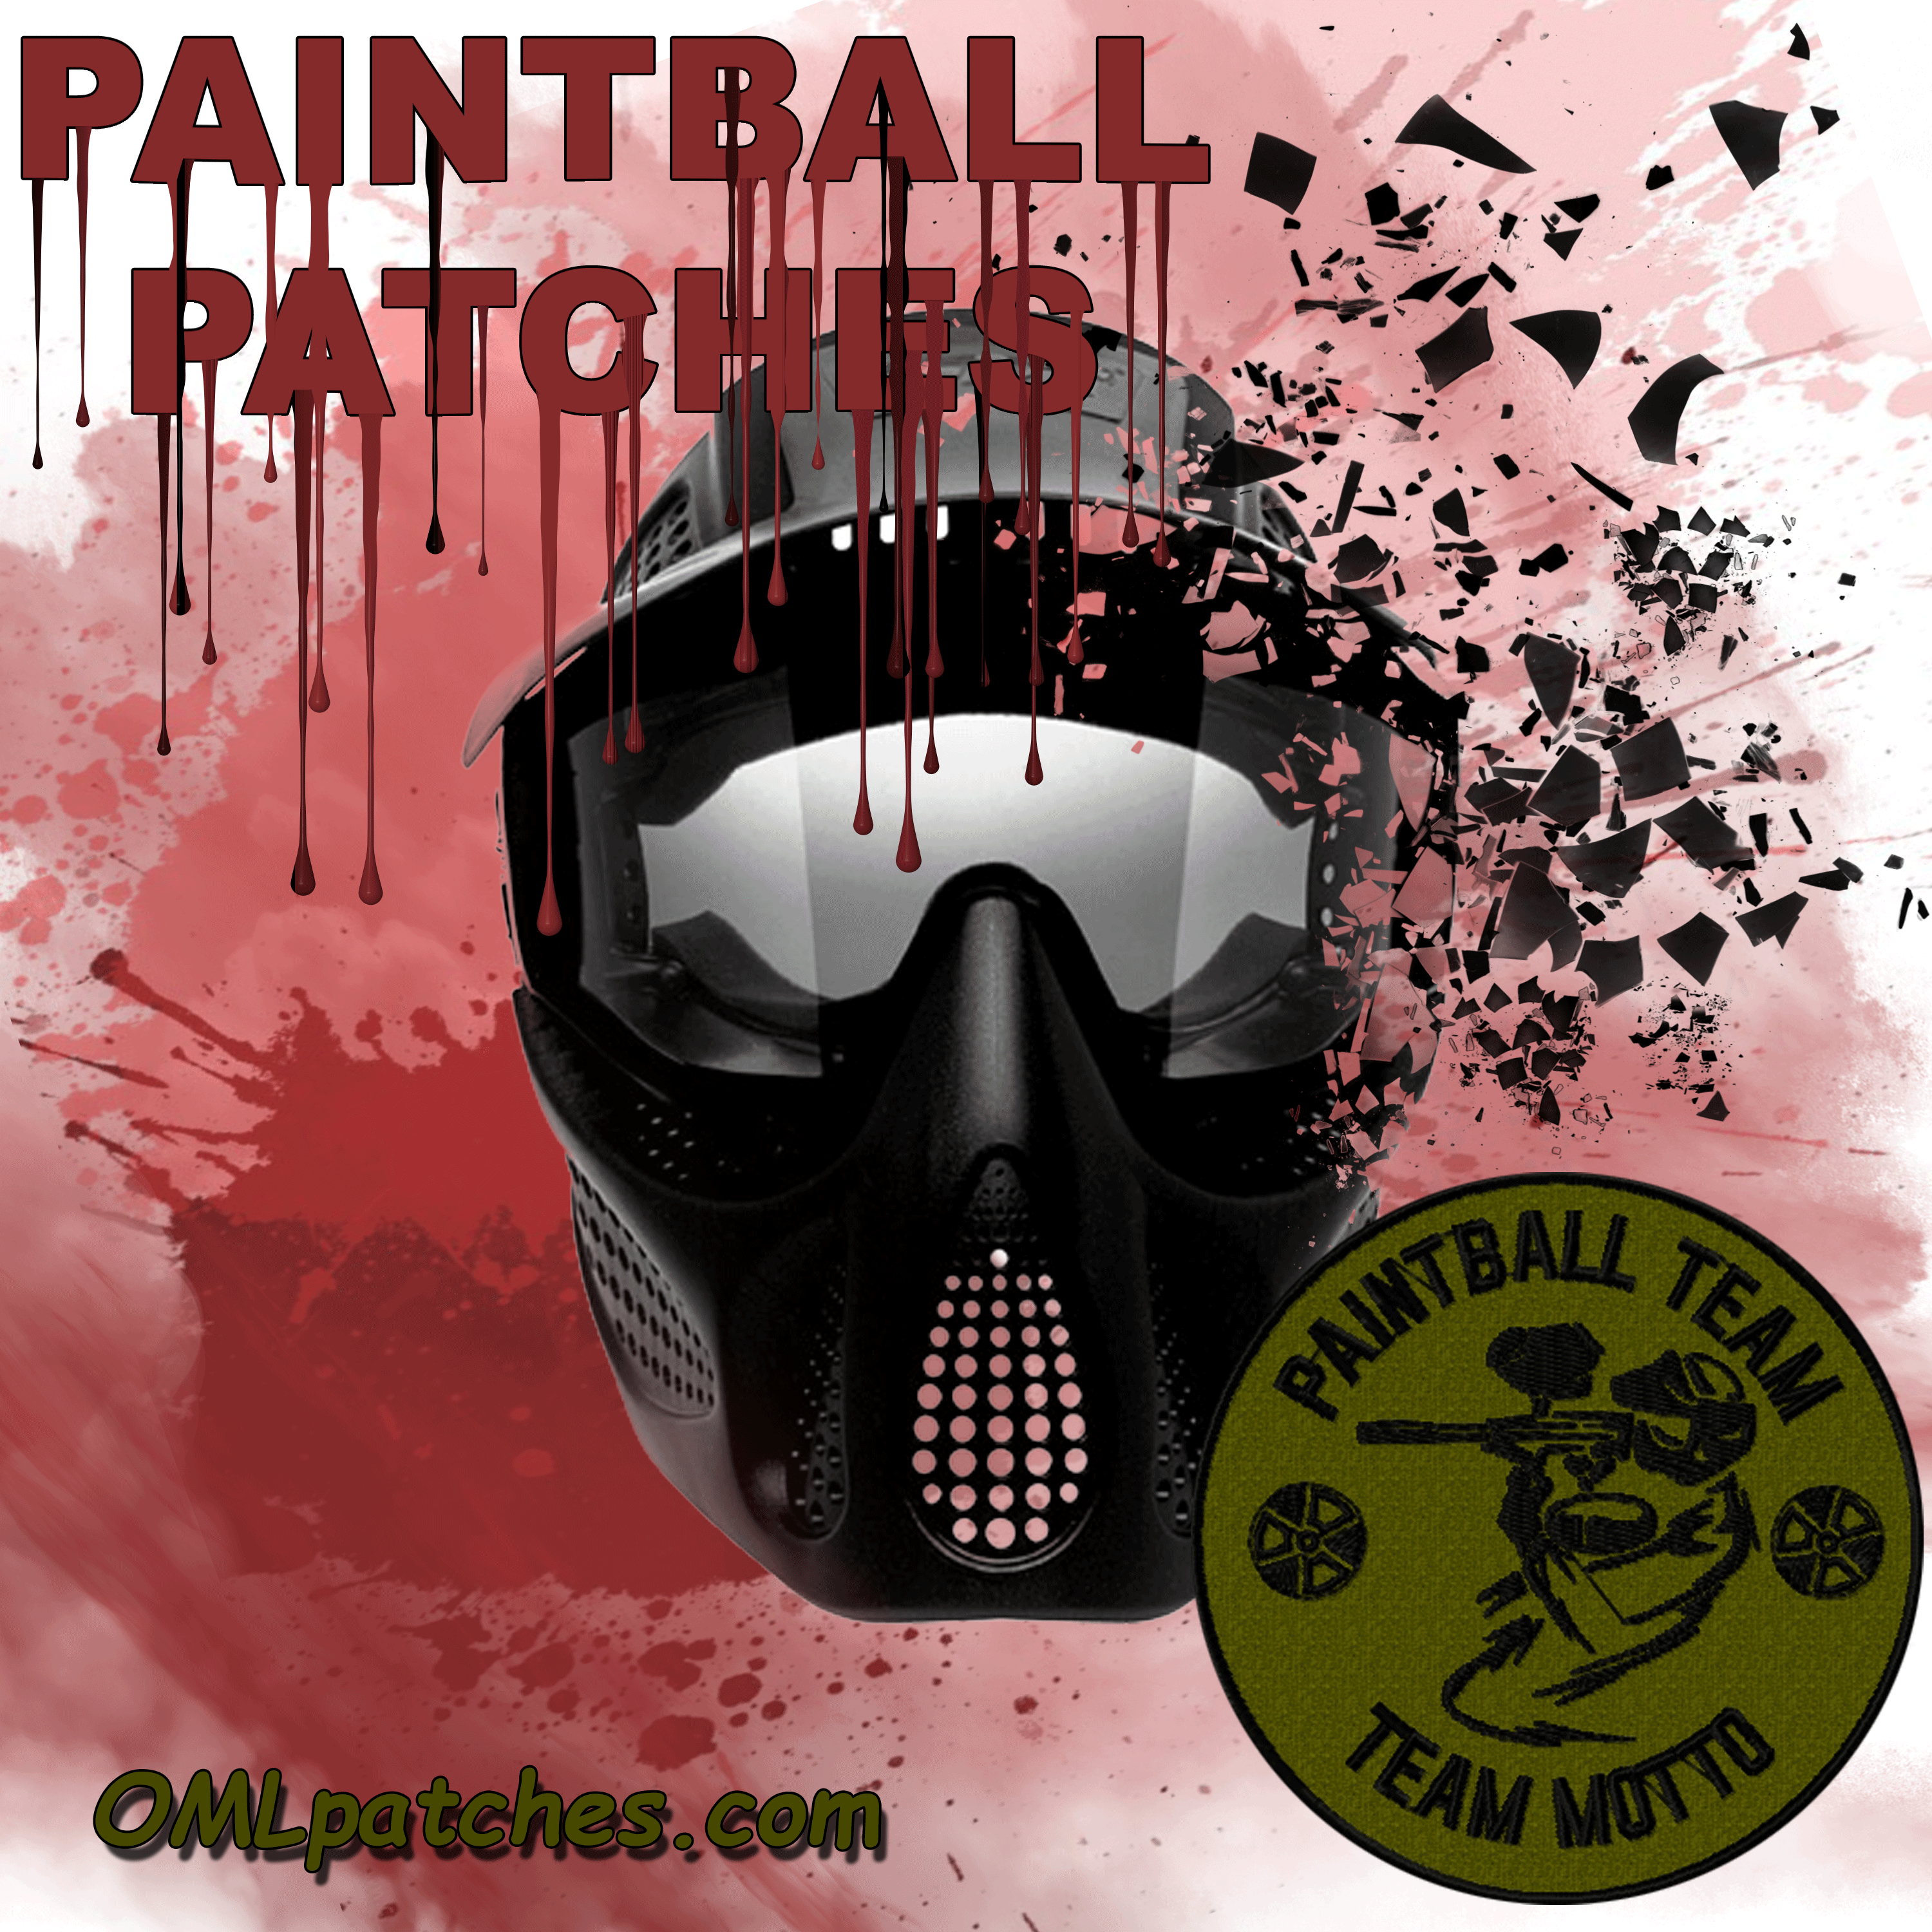 paintball patches at OMLpatches.com